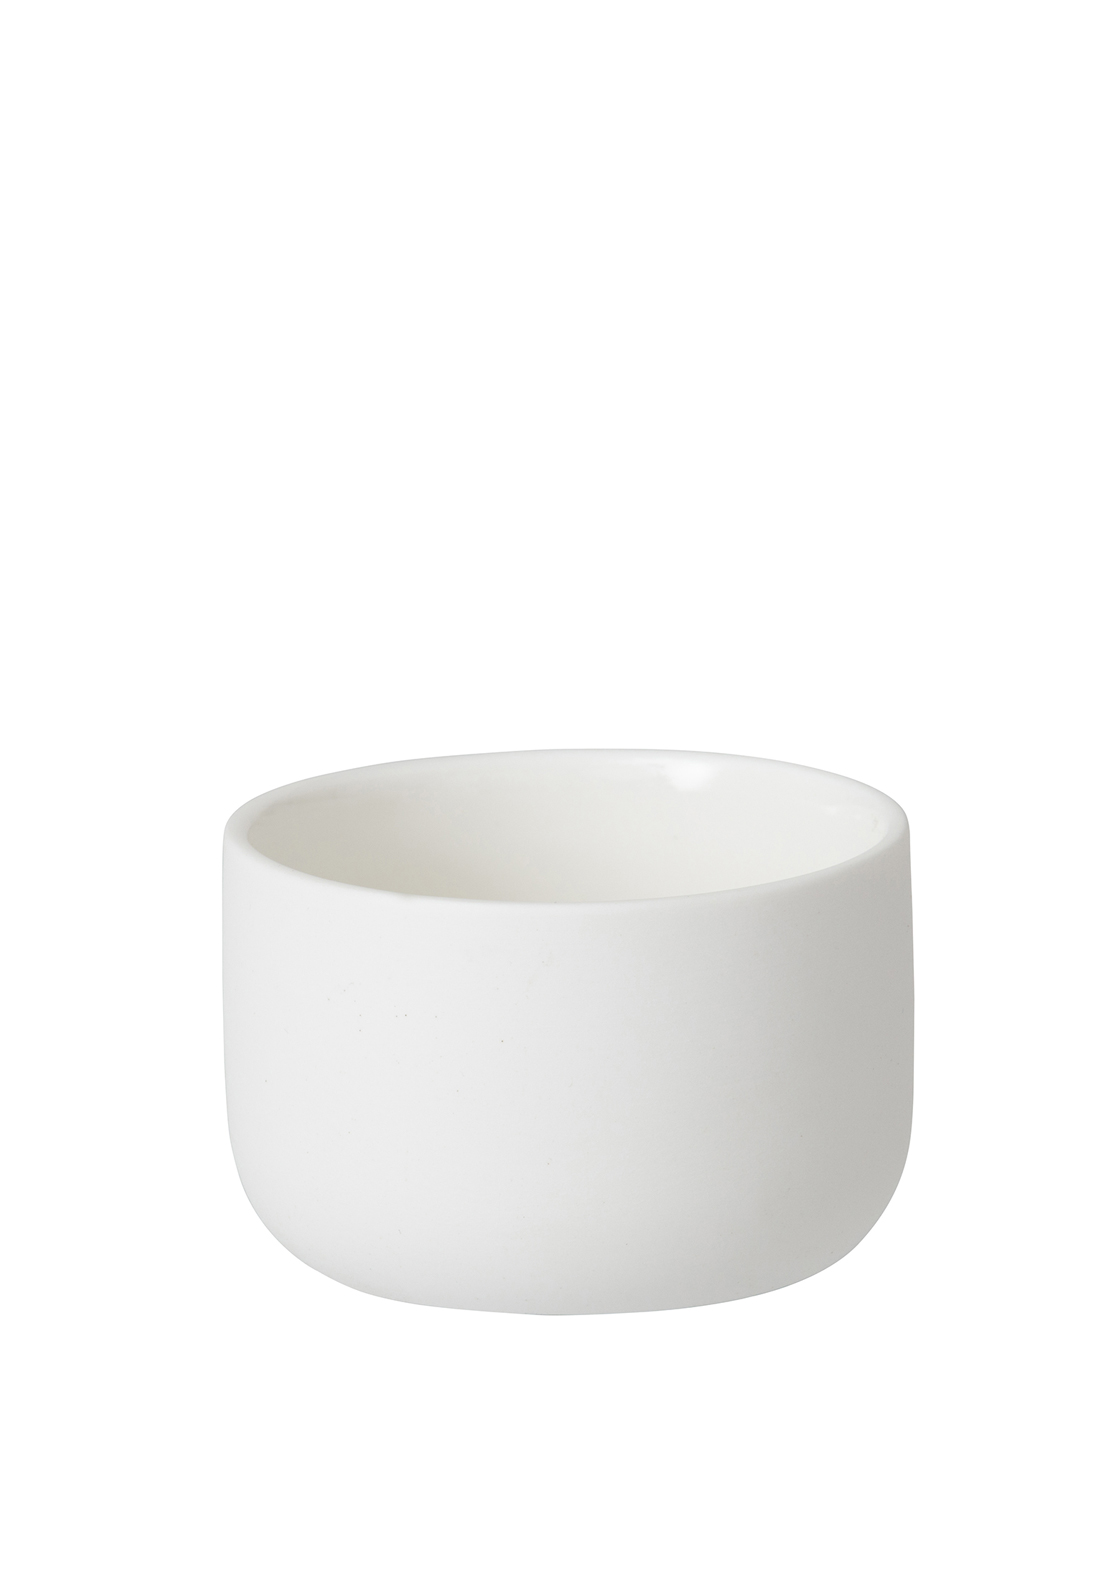 Yankee Candle Harmony Tealight Holder, White